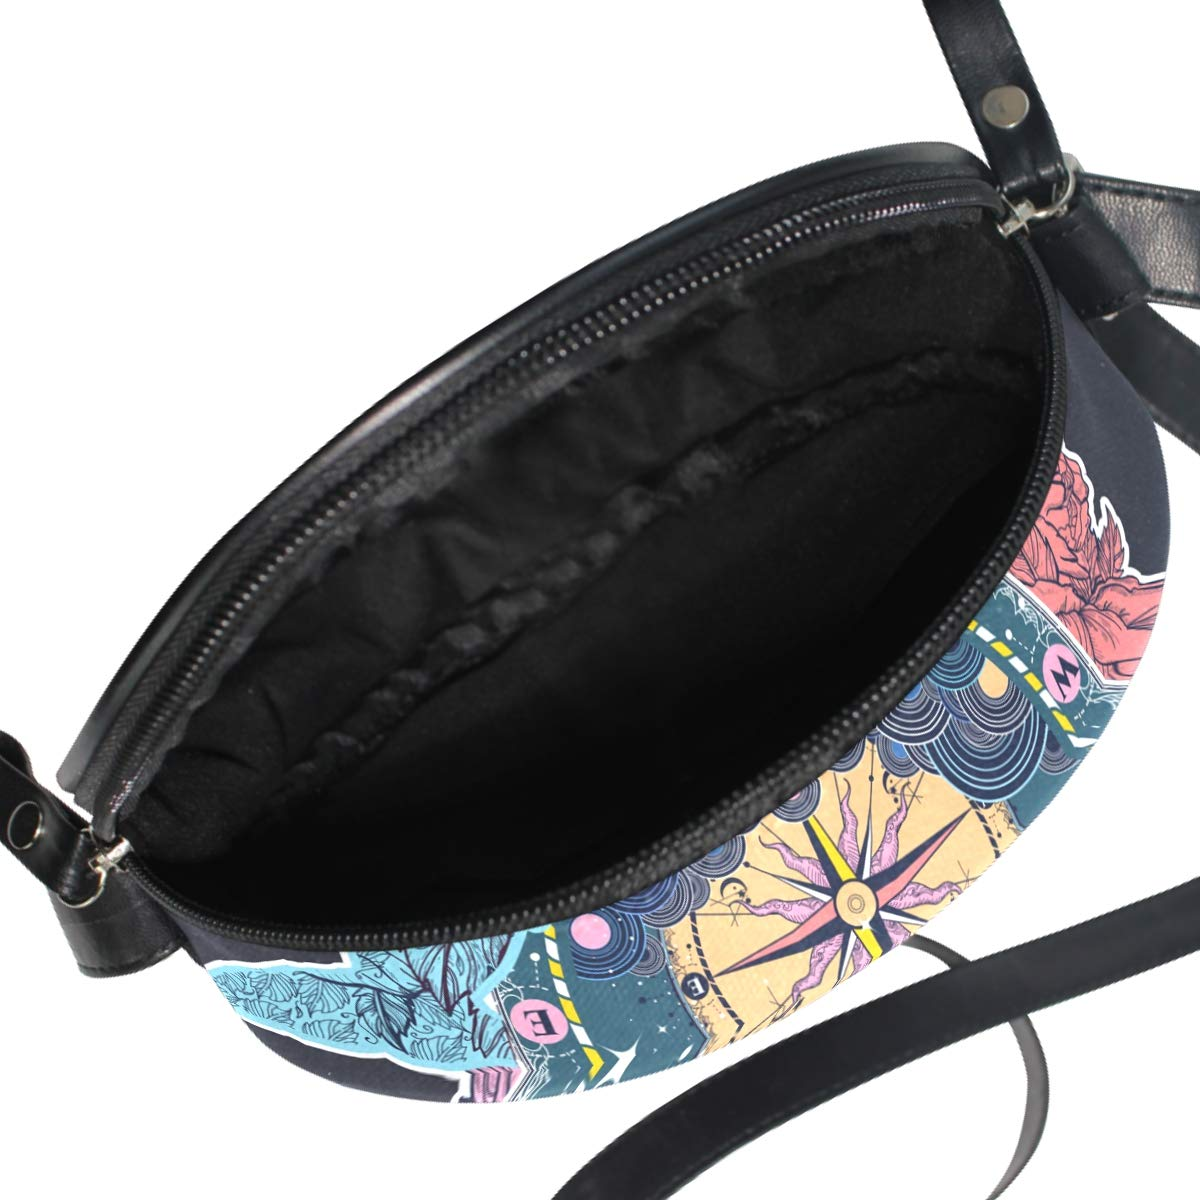 Antique Compass Whale Small Round Canvas Crossbody Messenger Bags for Women